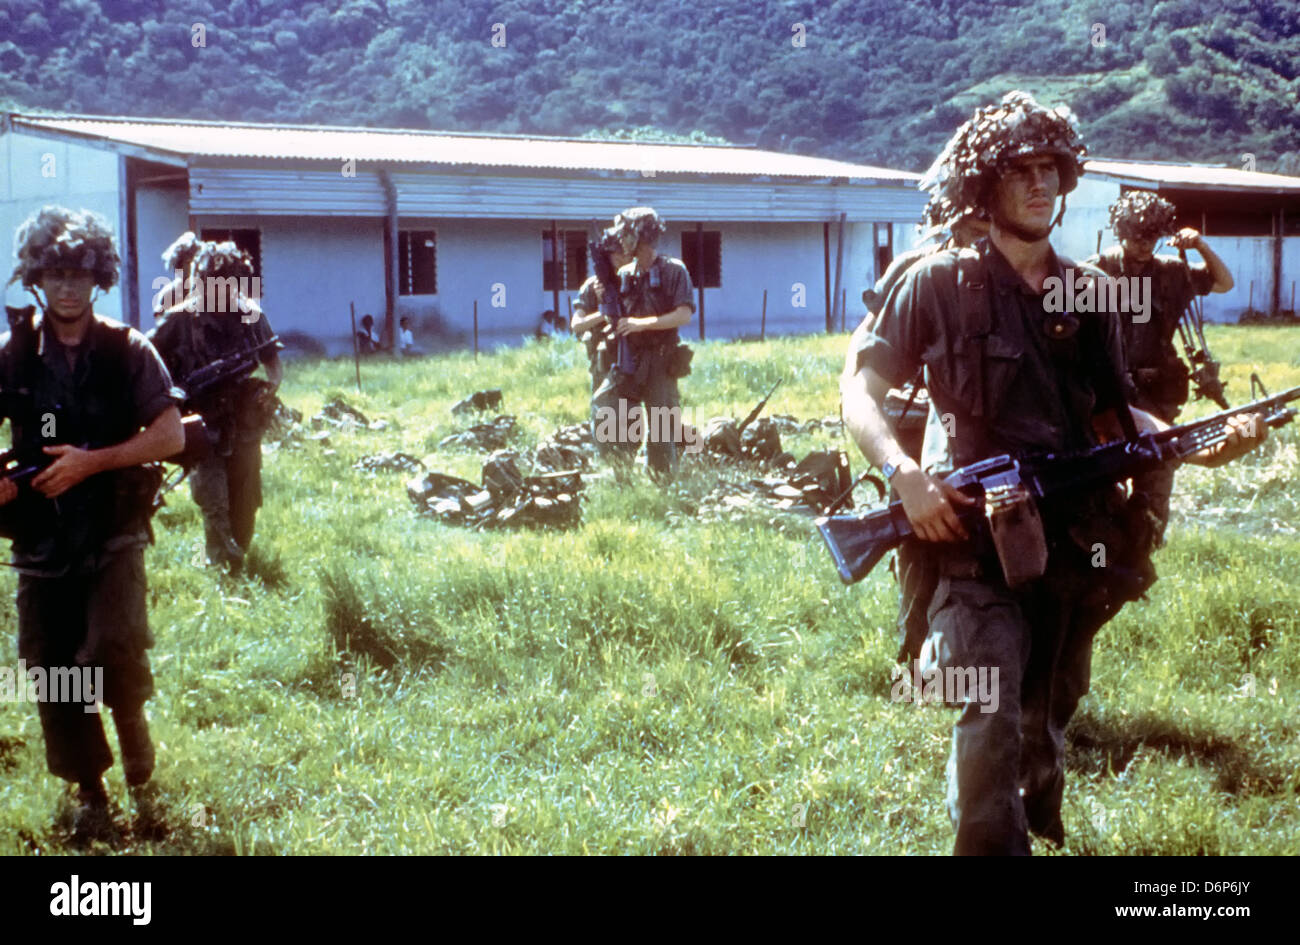 US 82nd Airborne Division soldiers during the Invasion of Grenada, codenamed Operation Urgent Fury October 25, 1983 - Stock Image